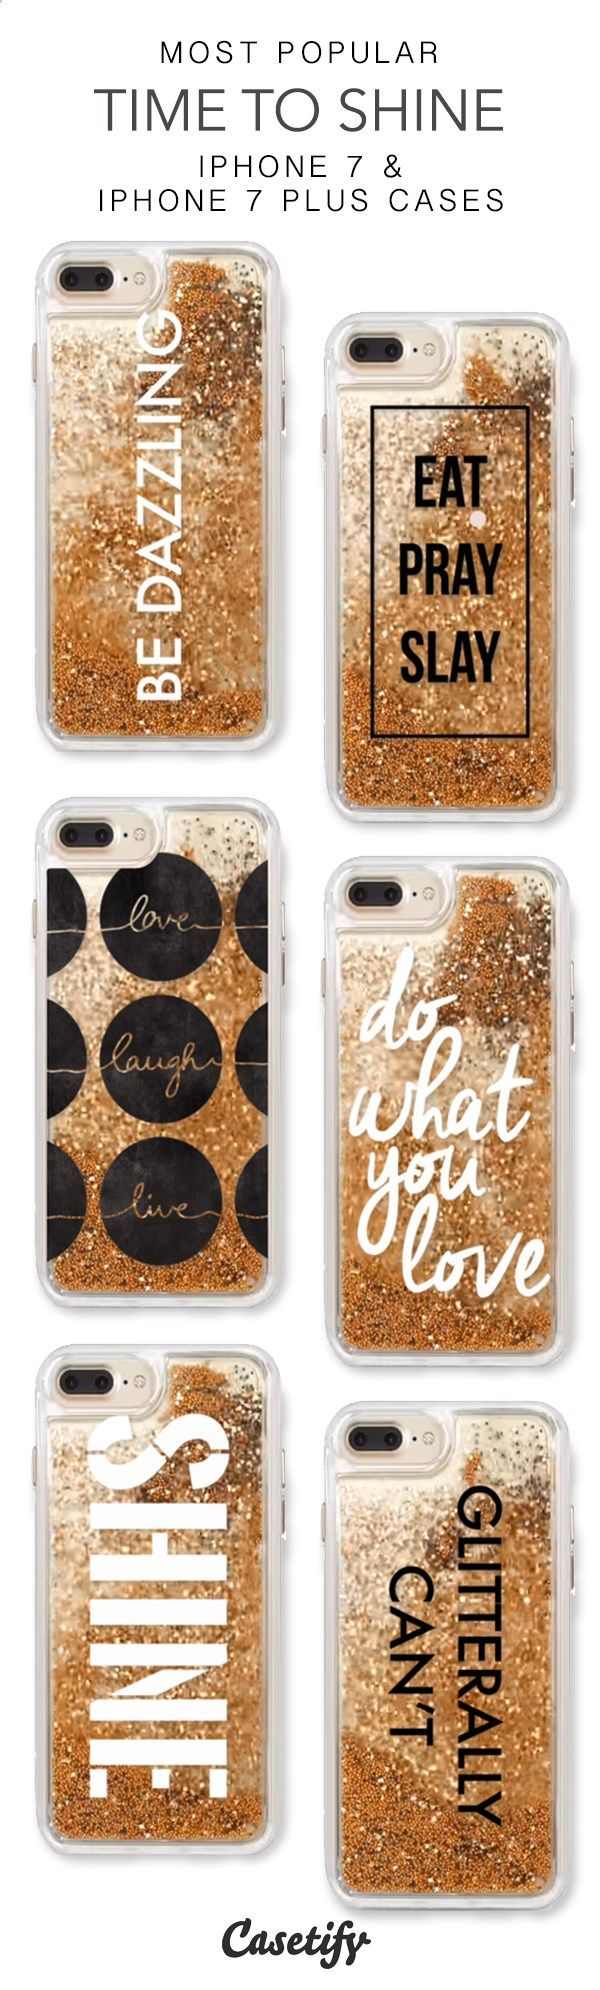 Phone Cases - Most Popular Time To Shine iPhone 7 Cases iPhone 7 Plus Cases. More glitter iPhone case here > https://www.casetify.com/en_US/collections/iphone-7-glitter-cases#/?vc=l71mrMBQxC